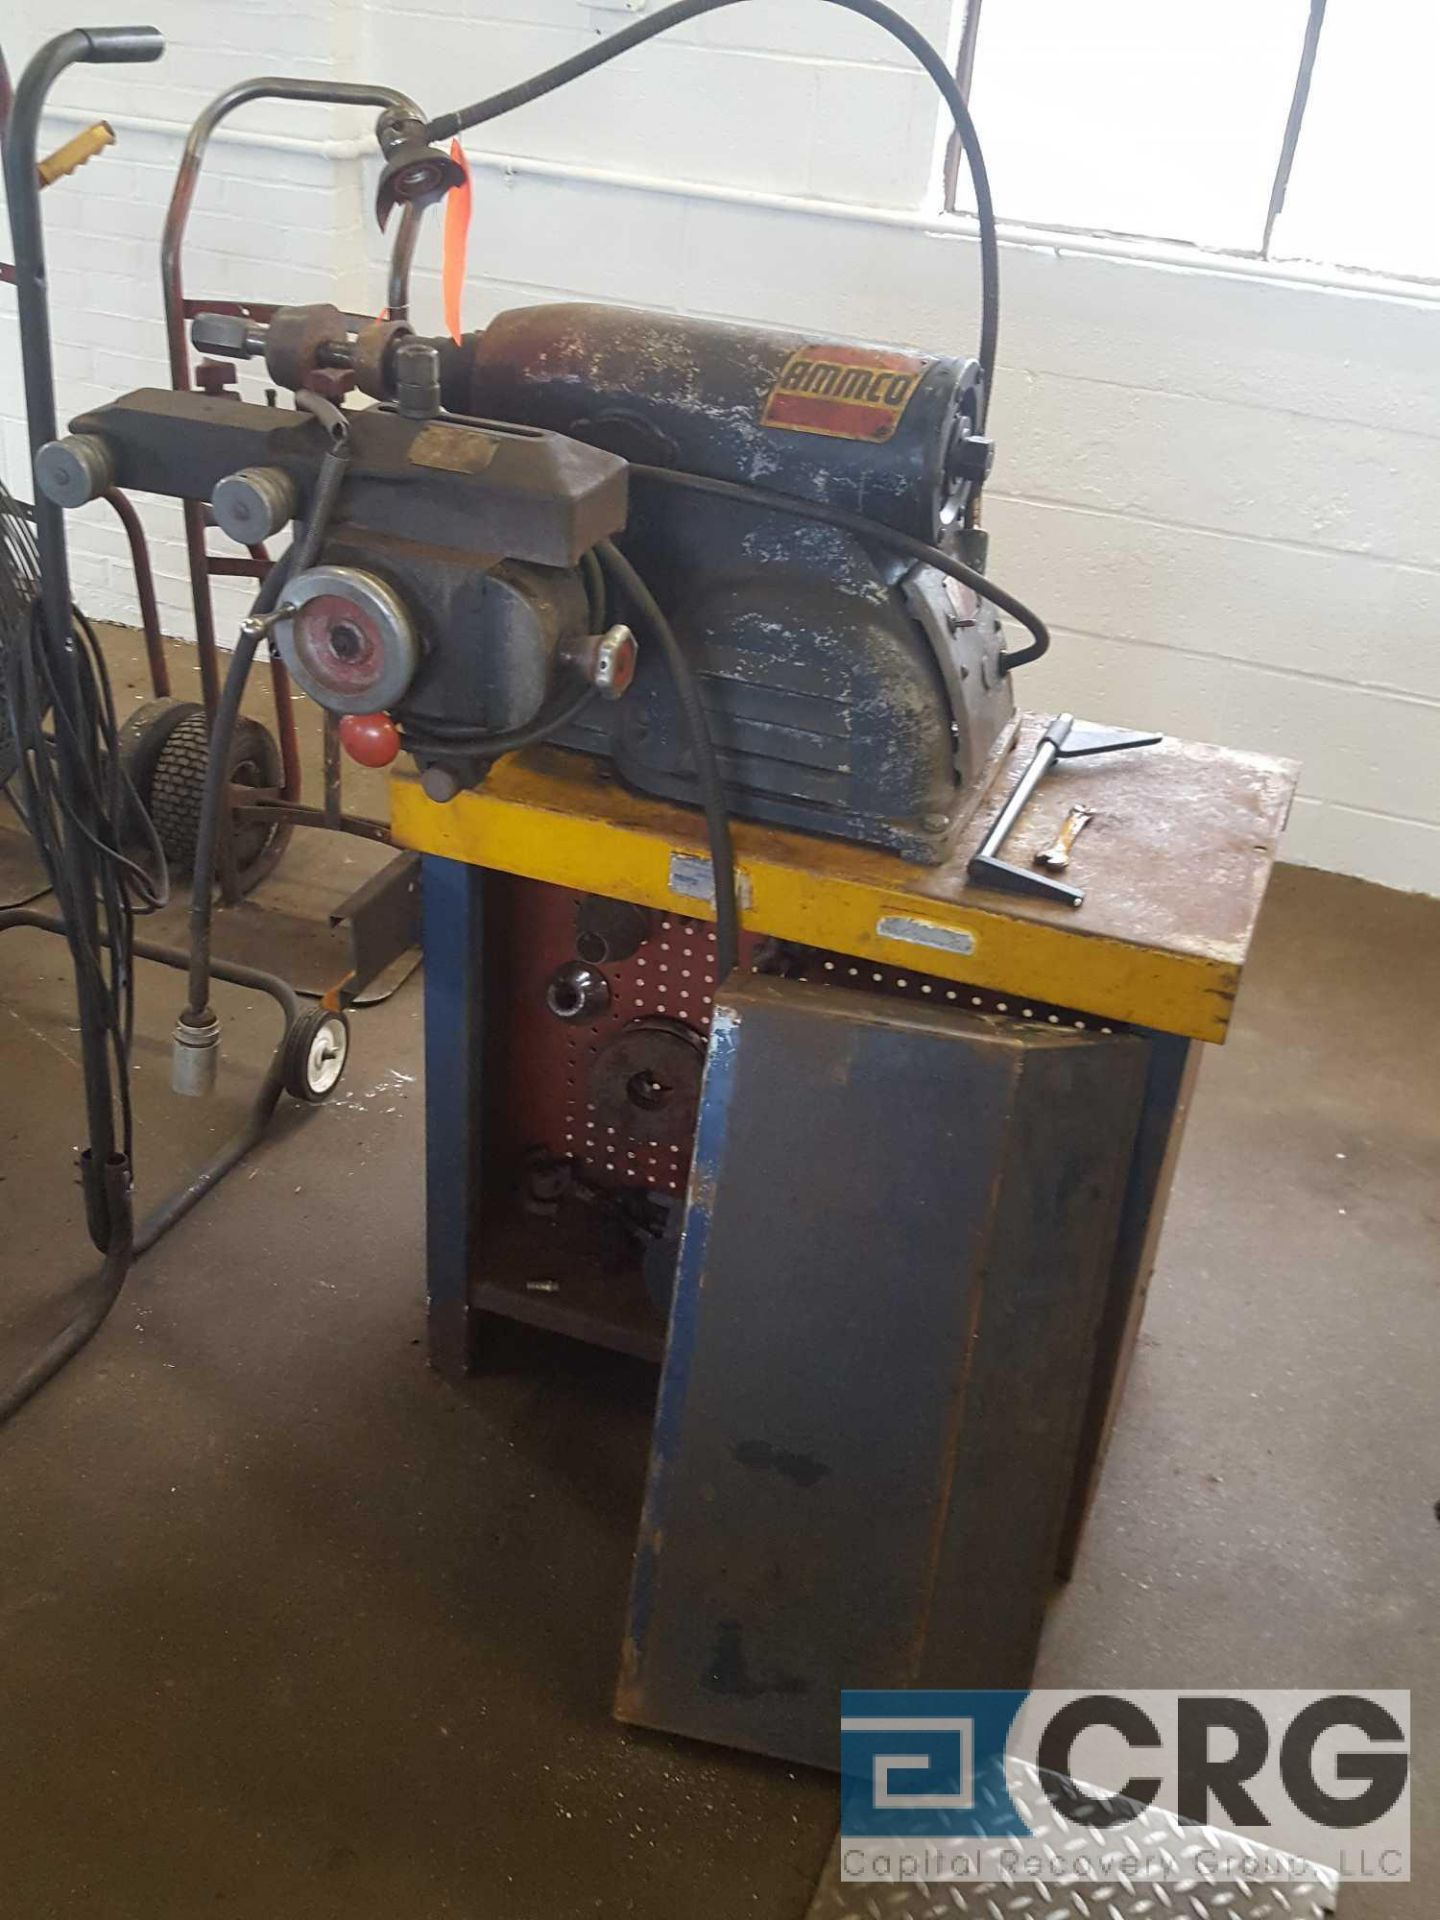 Ammco brake lathe, 1 ph, m/n, s/n not available - Image 3 of 4